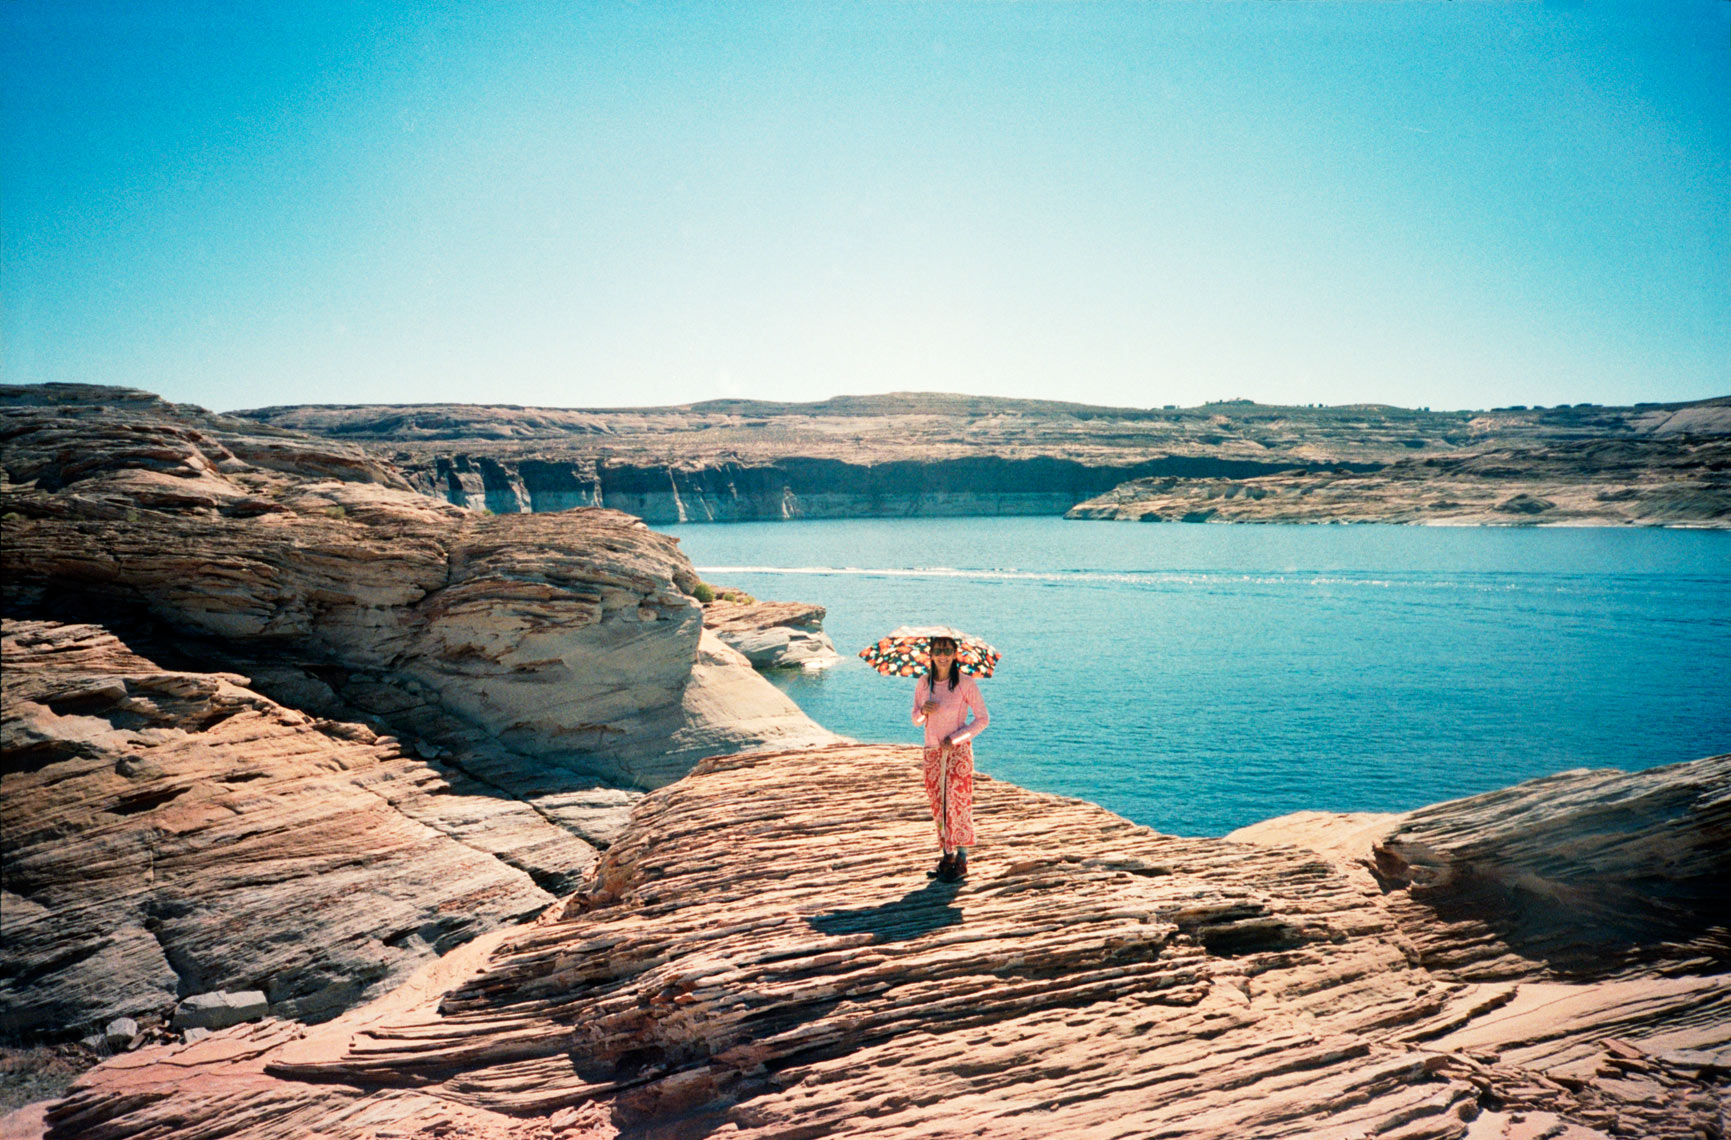 view looking out over Lake Powell